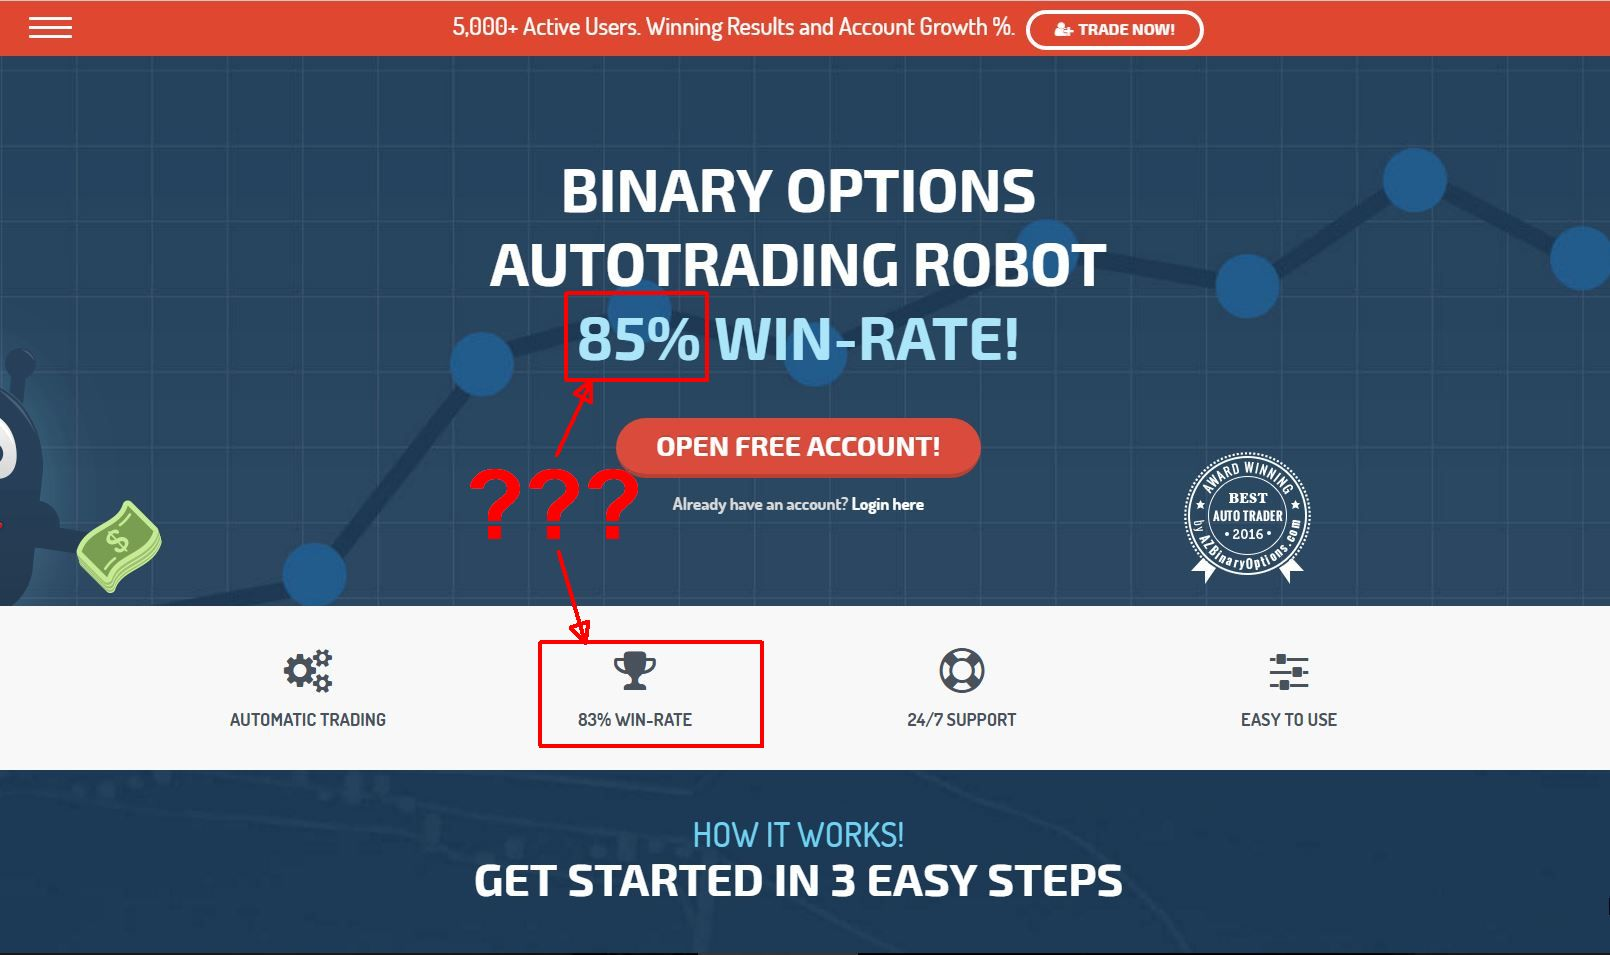 The best binary options company